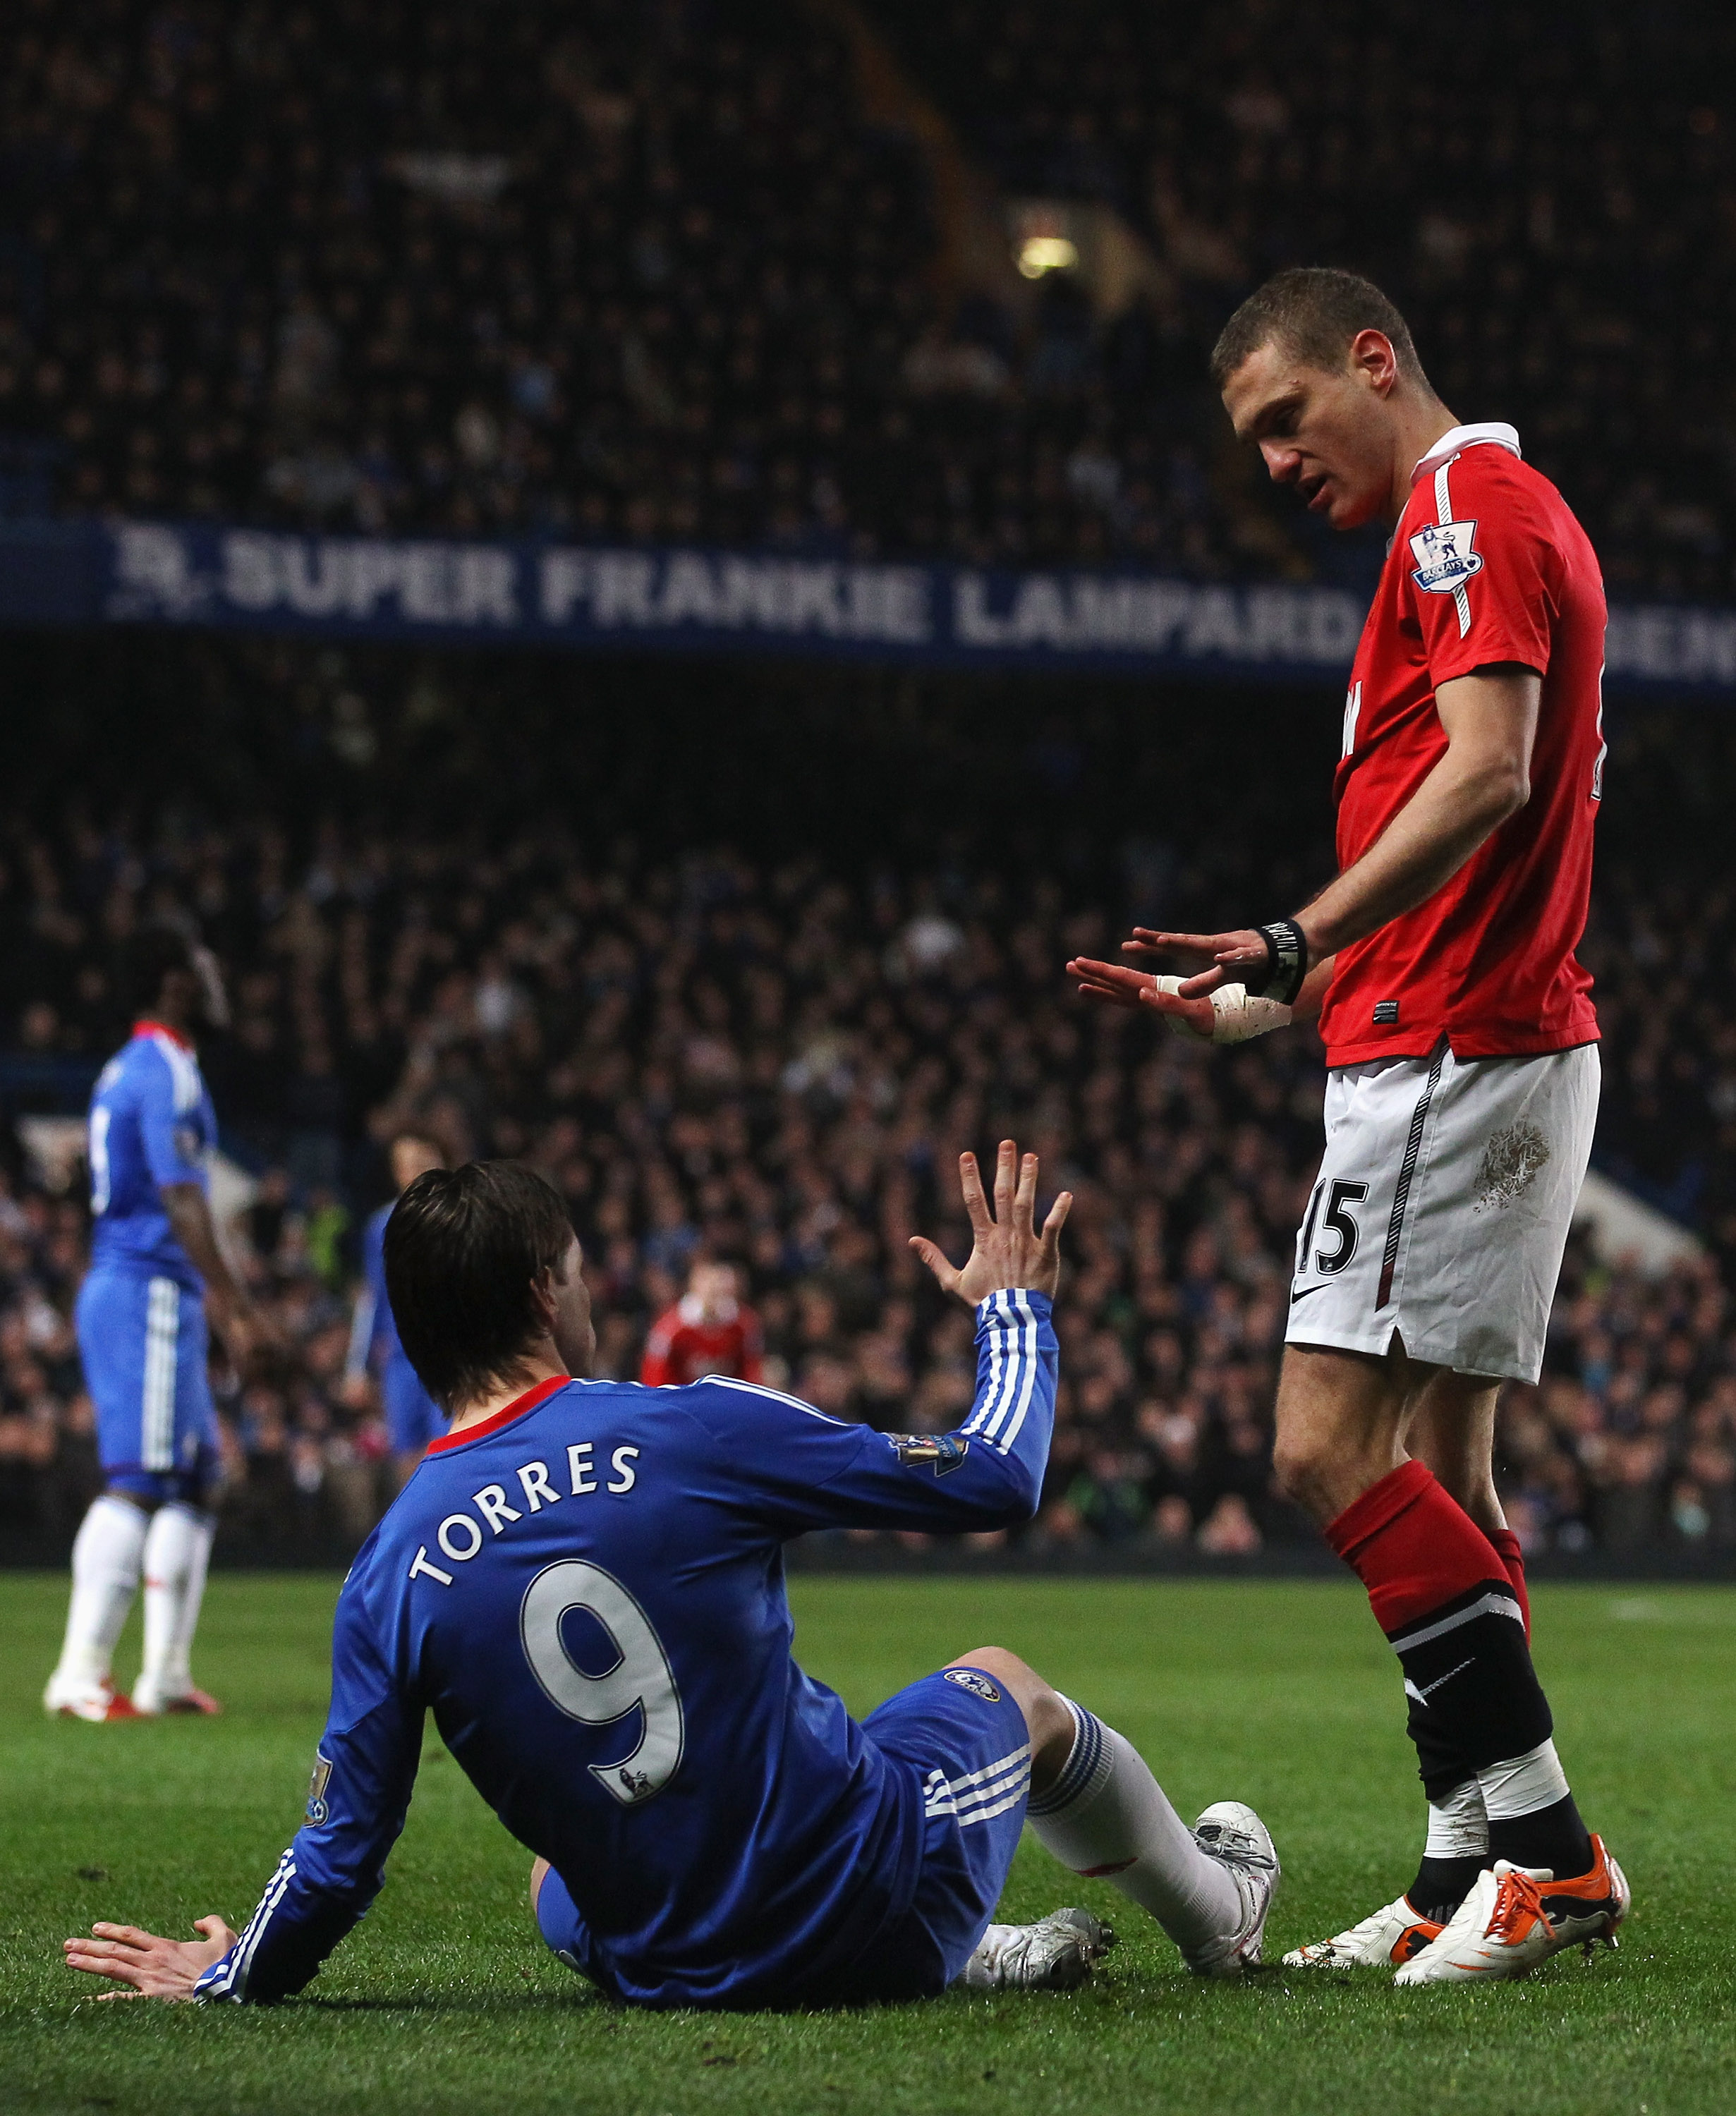 LONDON, ENGLAND - MARCH 01:  Nemanja Vidic of Manchester United exchanges words with Fernando Torres of Chelsea during the Barclays Premier League match between Chelsea and Manchester United at Stamford Bridge on March 1, 2011 in London, England.  (Photo